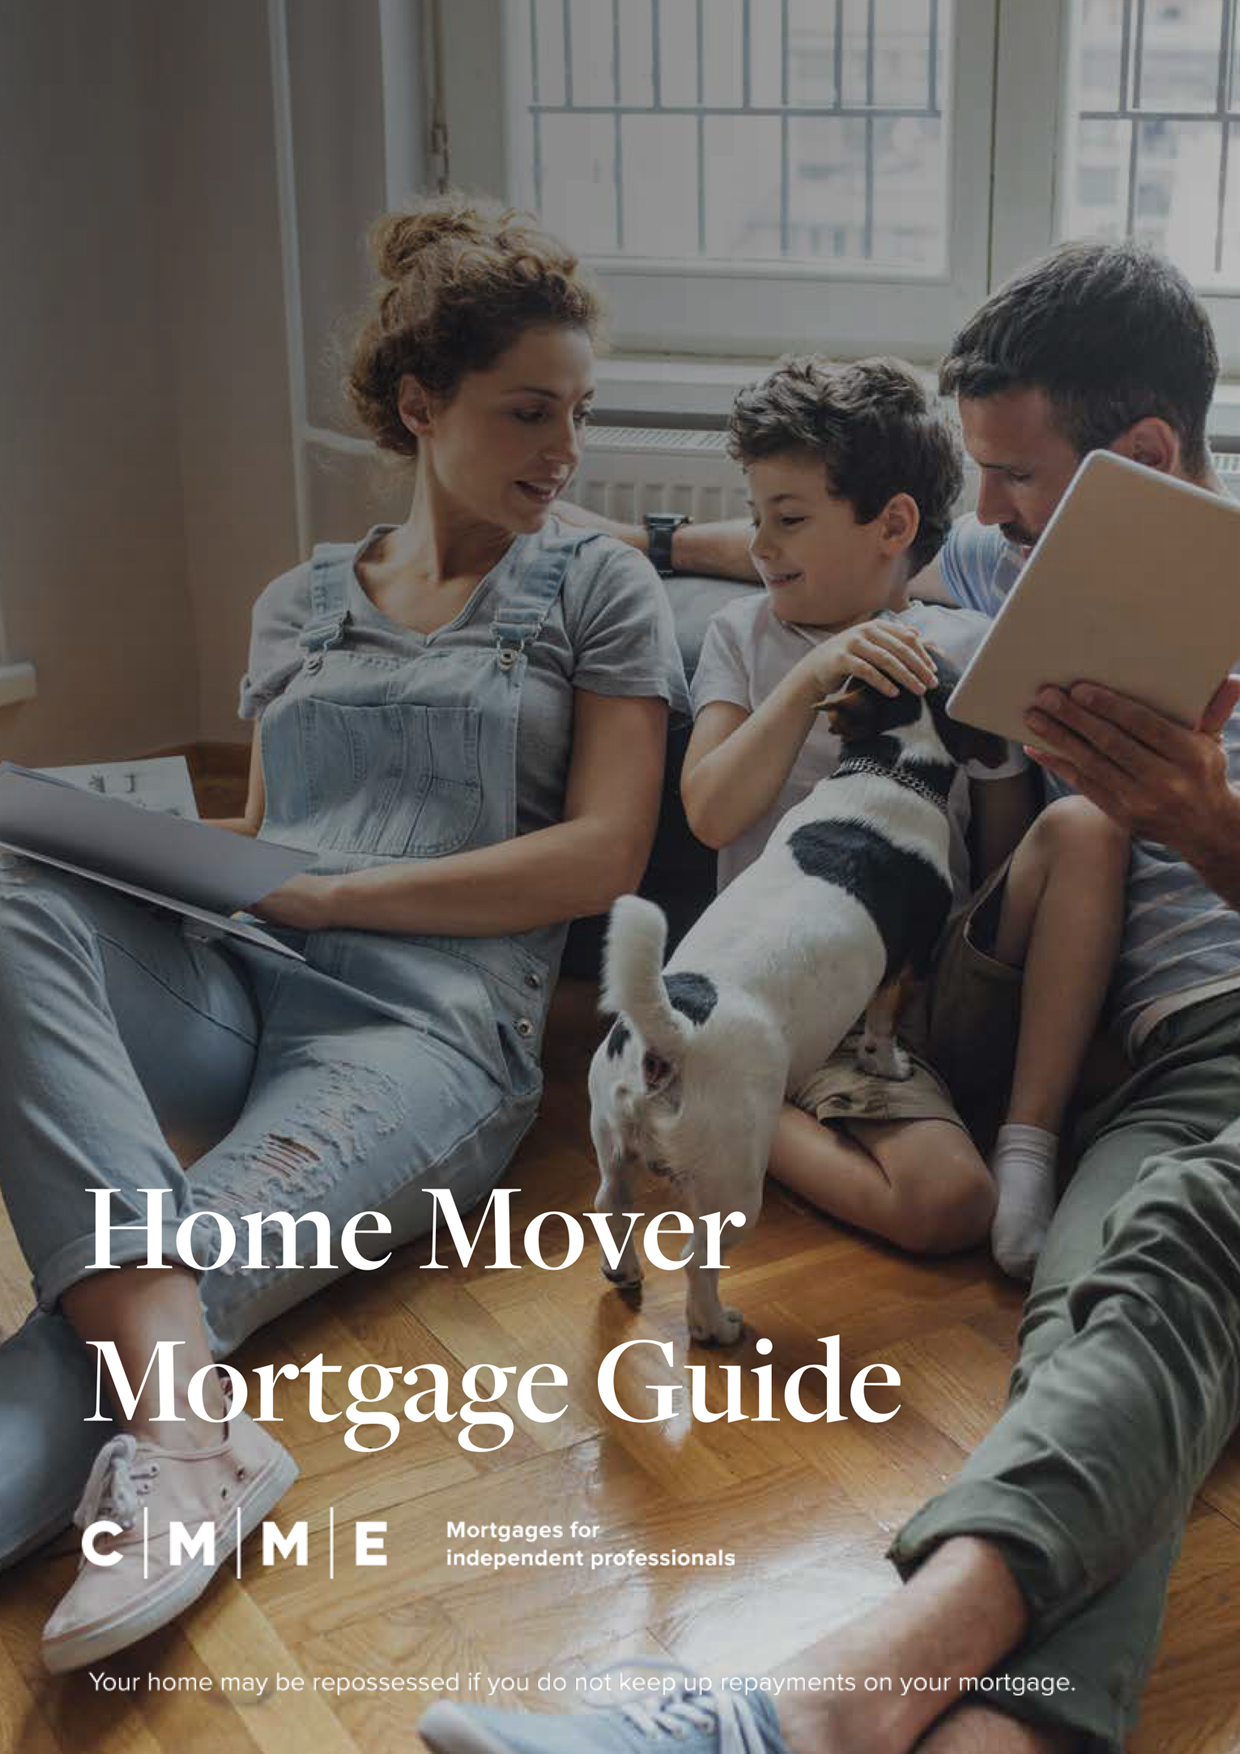 Home mover mortgage